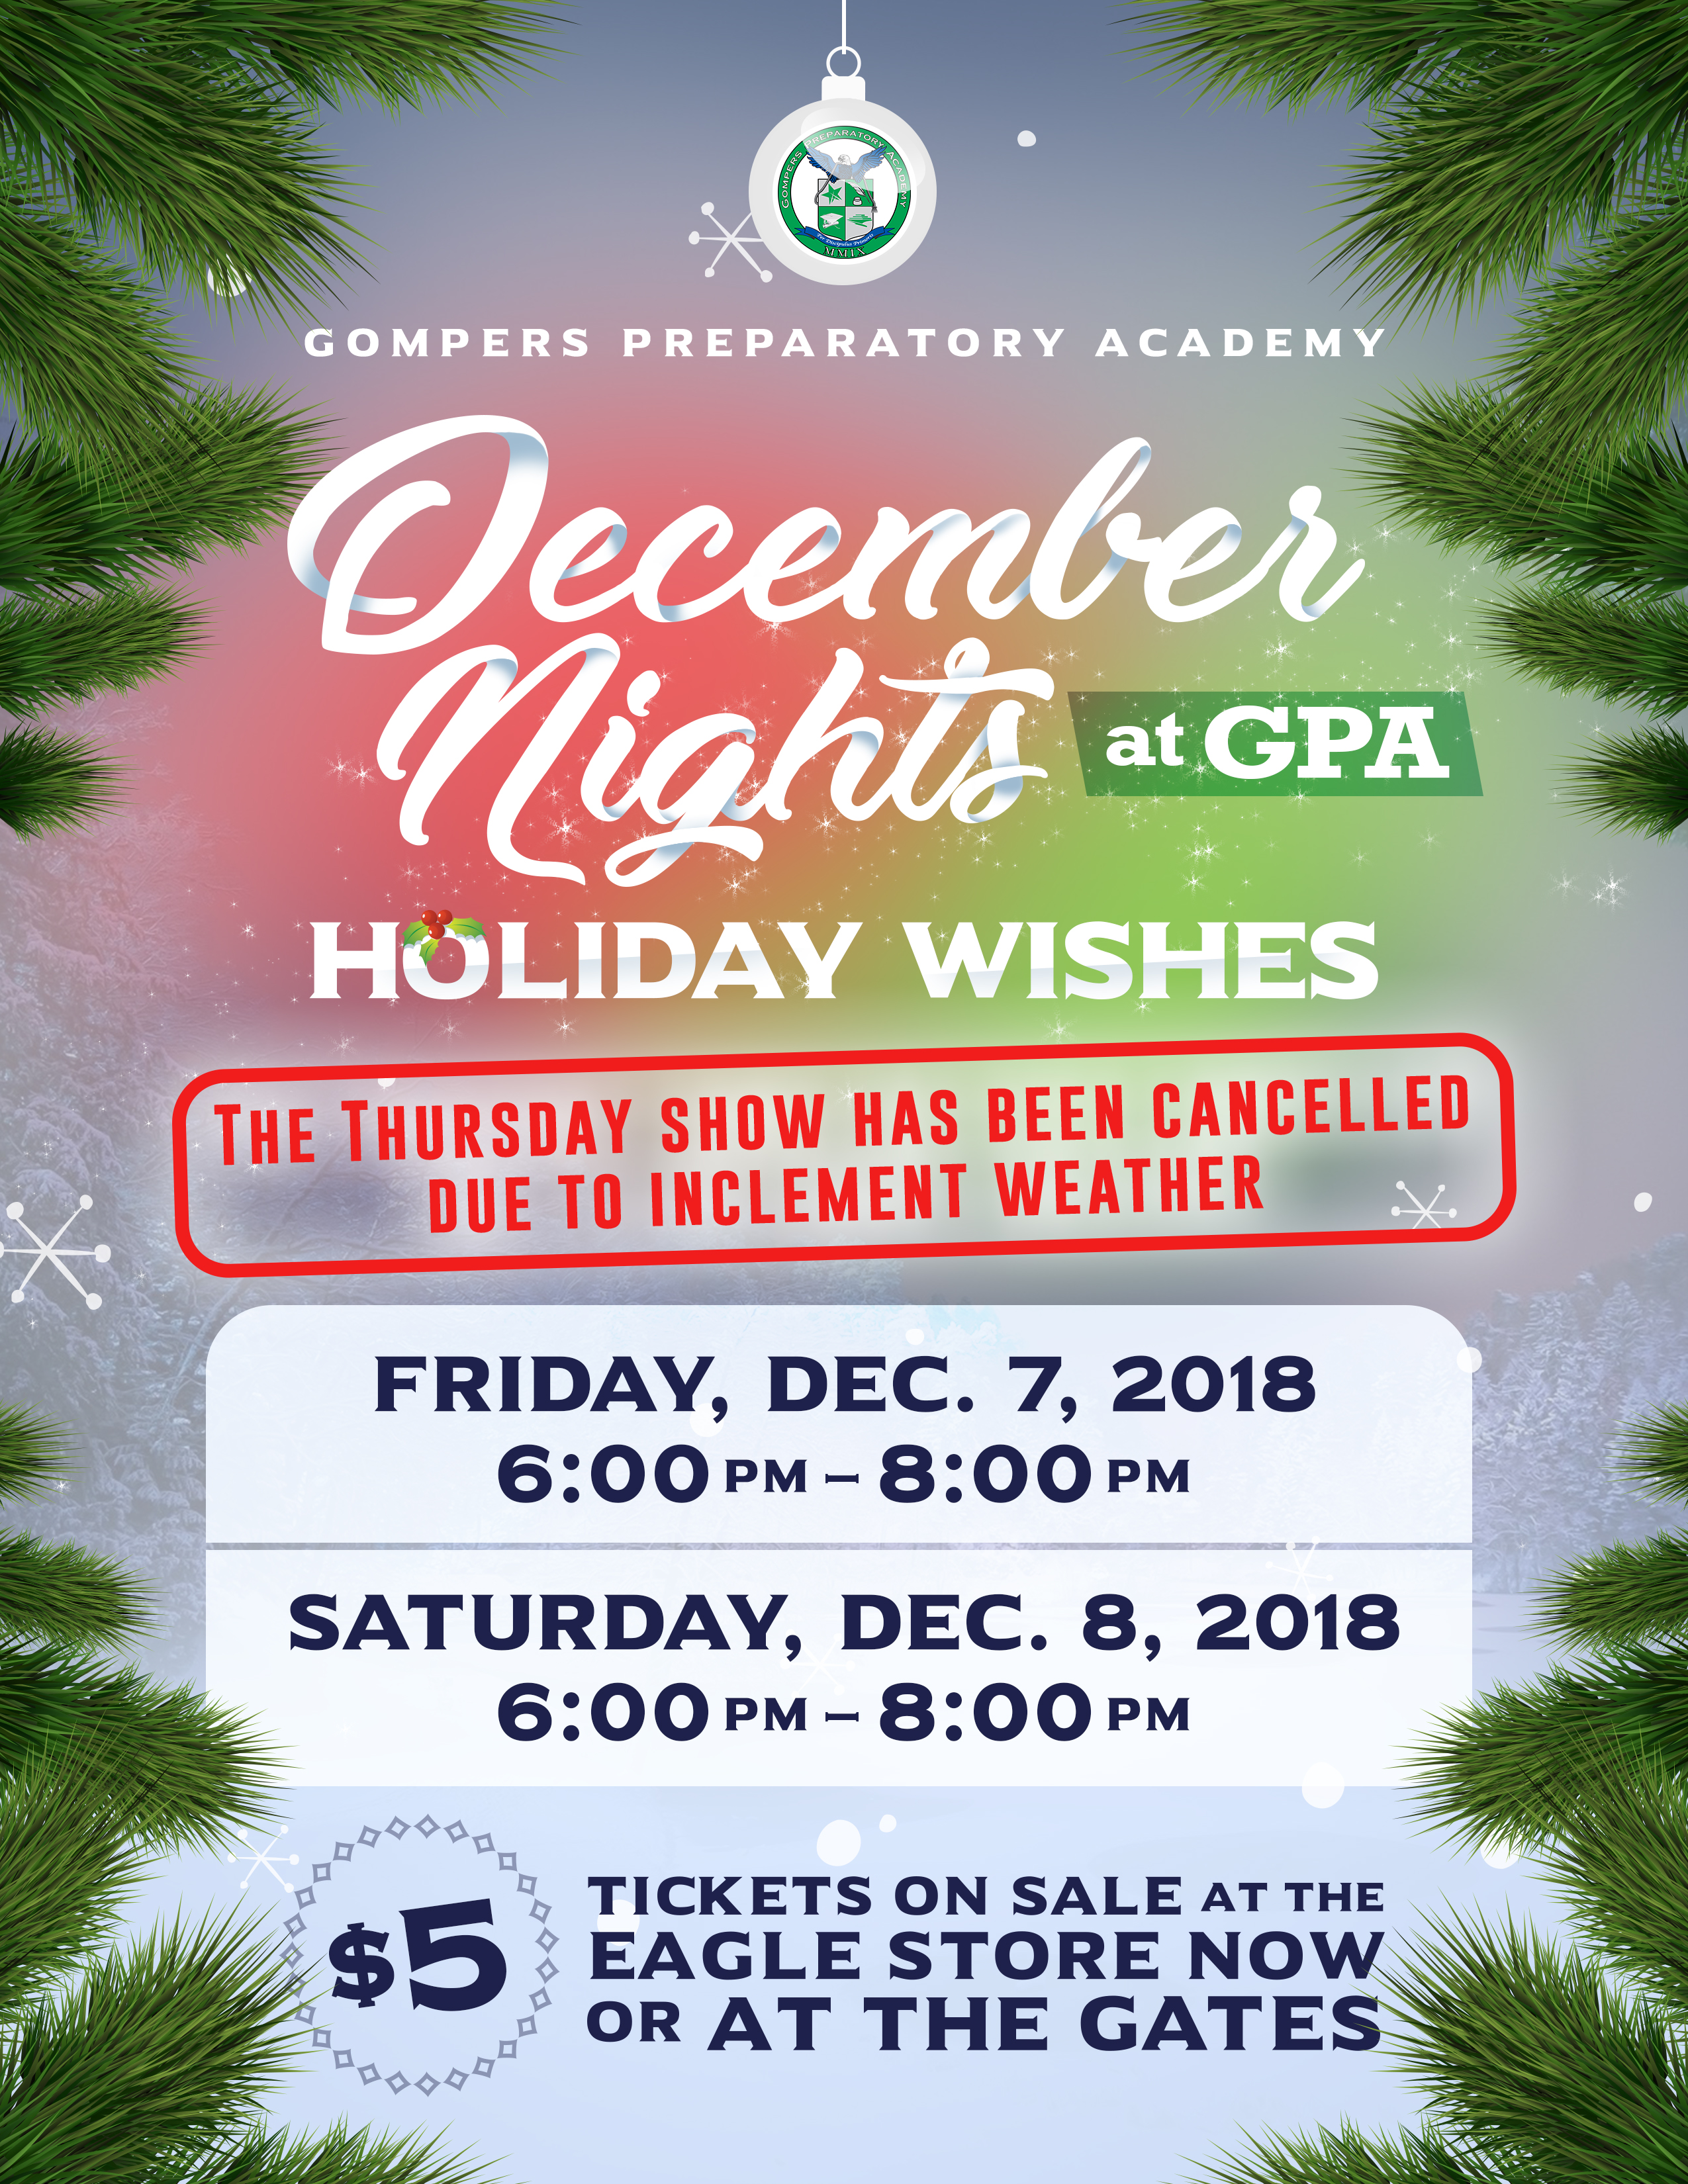 RESCHEDULED: December Nights at GPA: Holiday Wishes